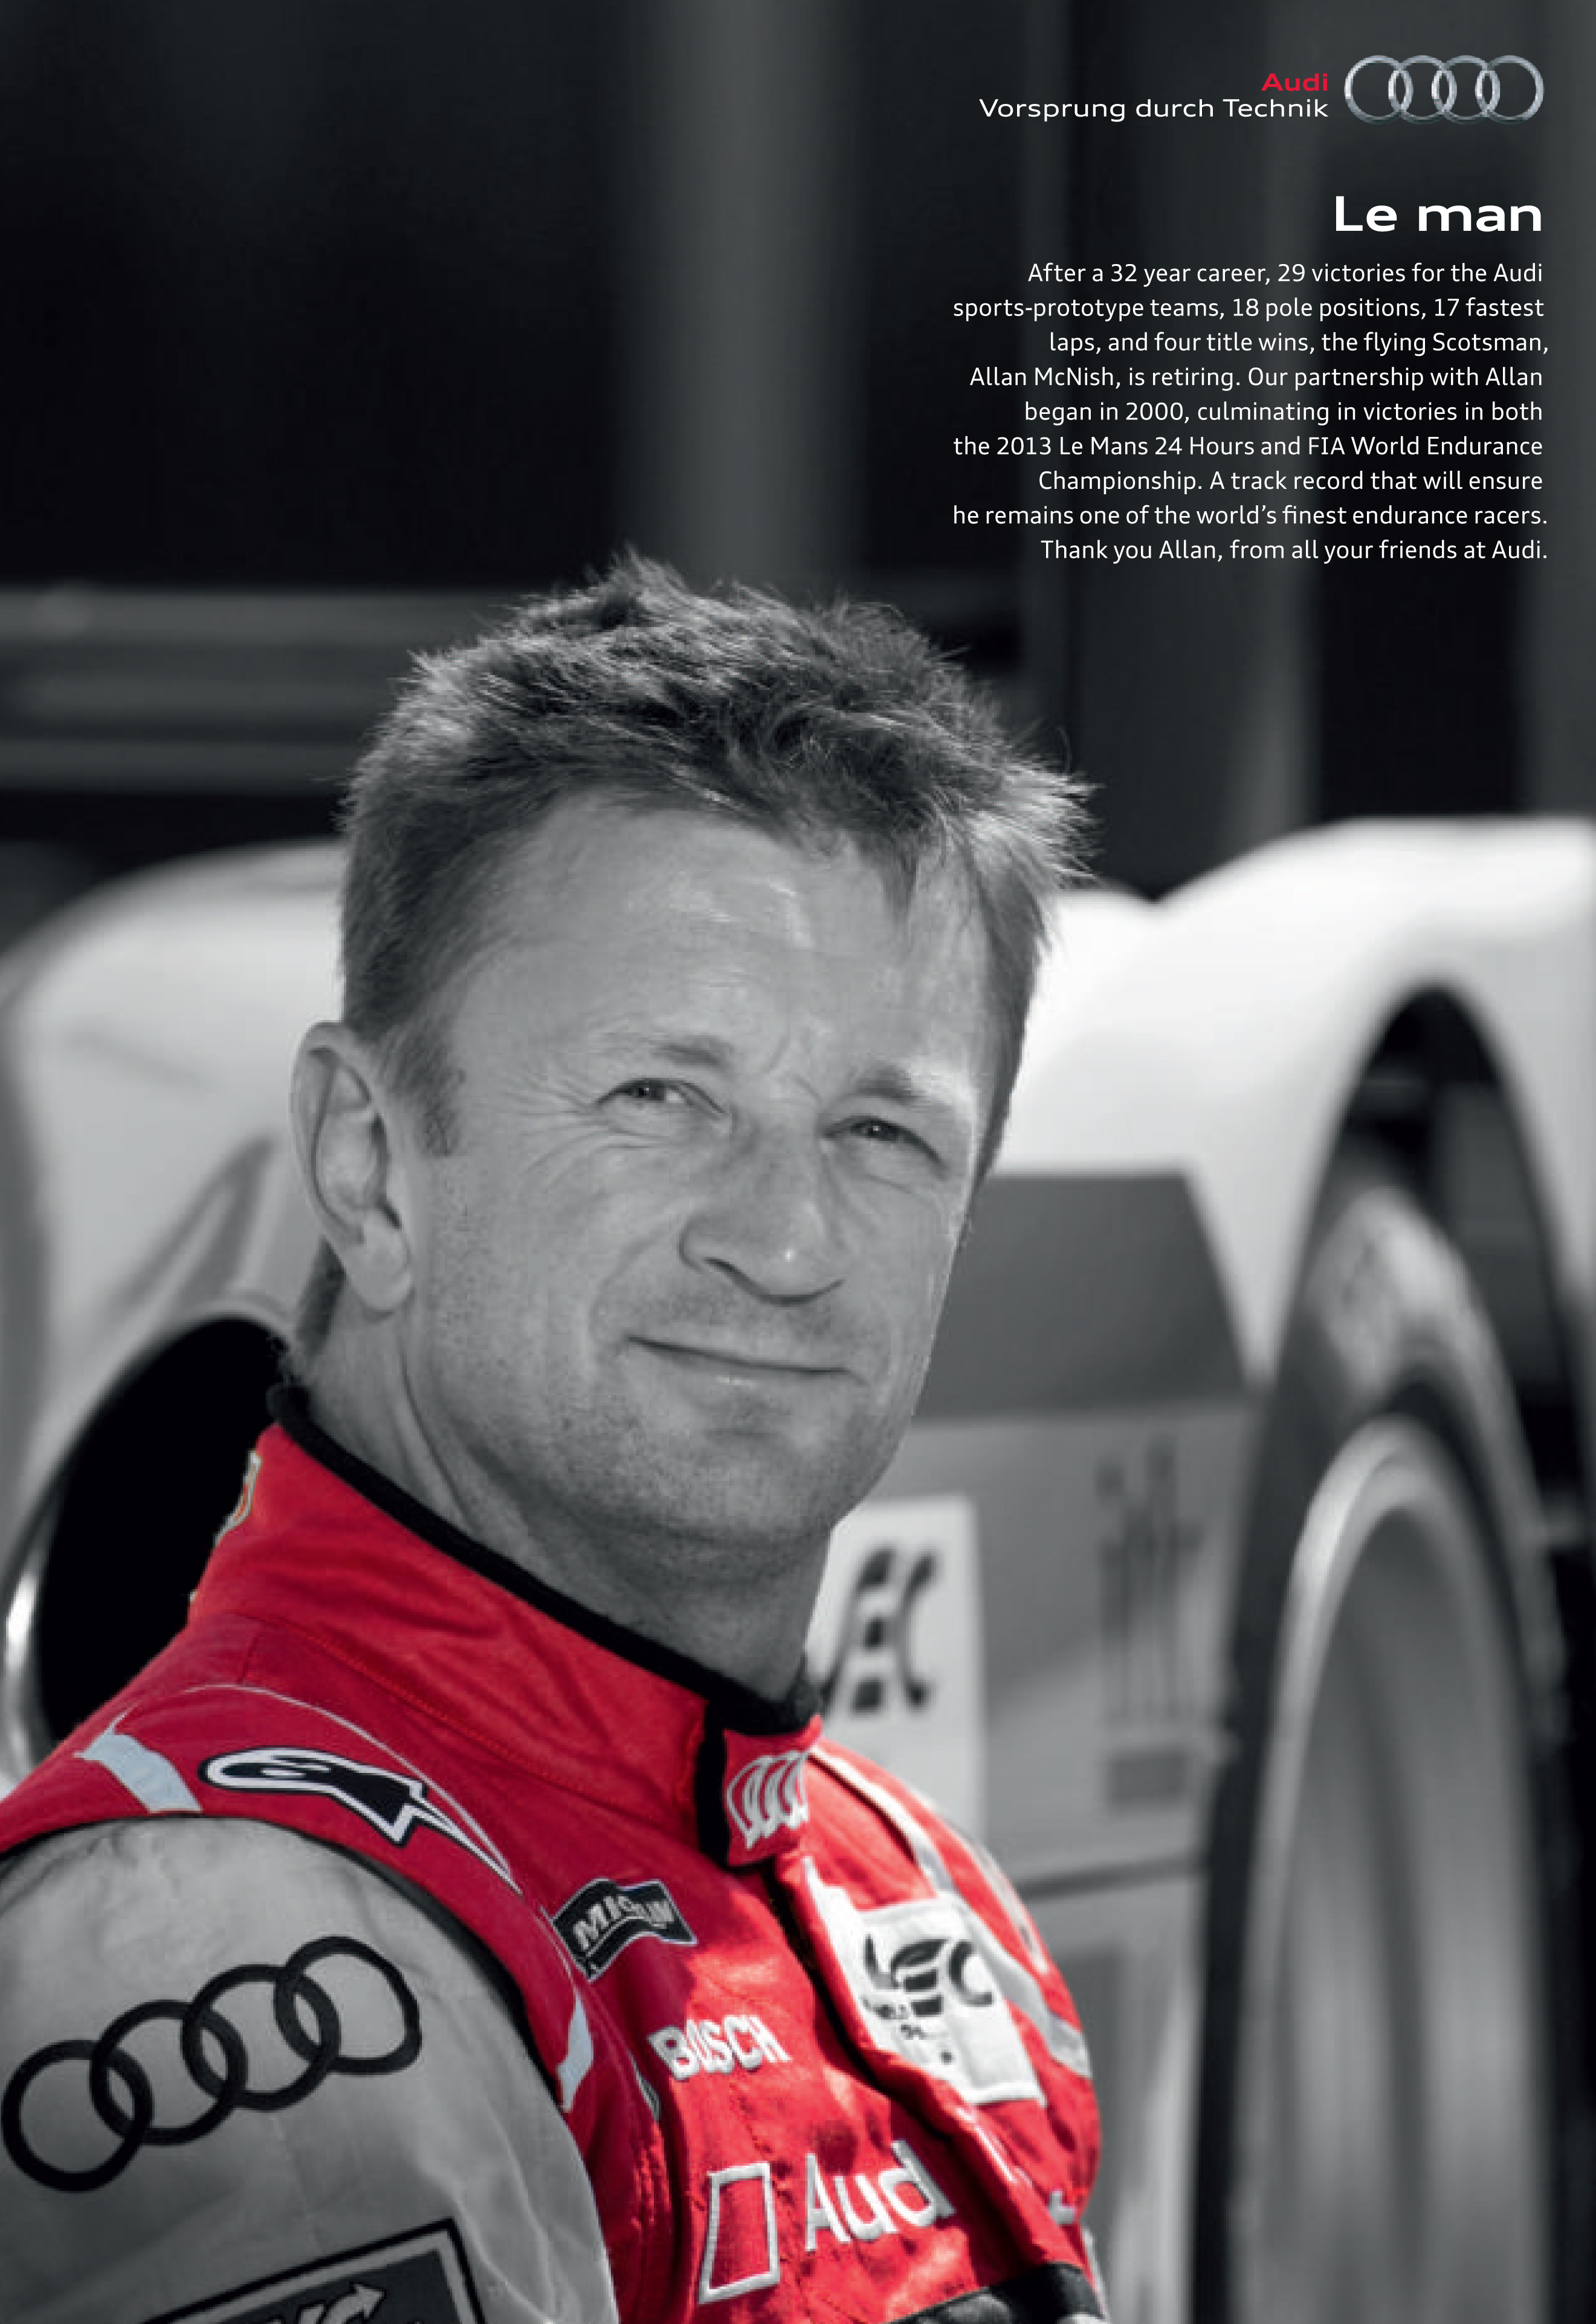 Audi's tribute to Allan McNish